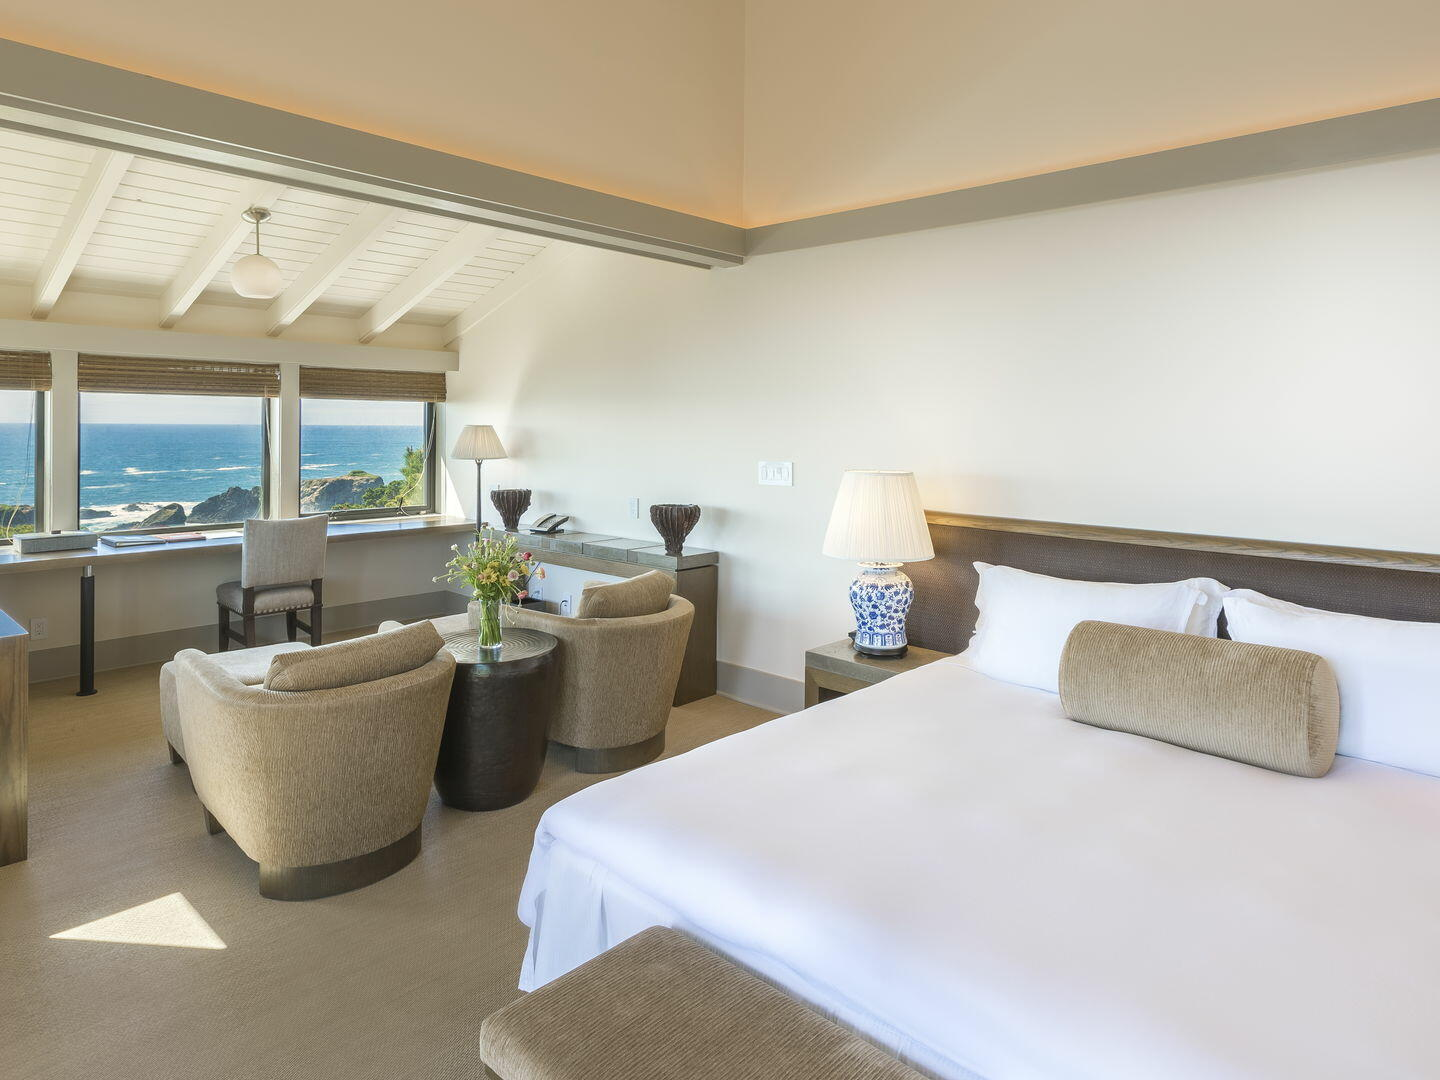 Bedroom of Heritage Suite with kingbed at Heritage House Resort